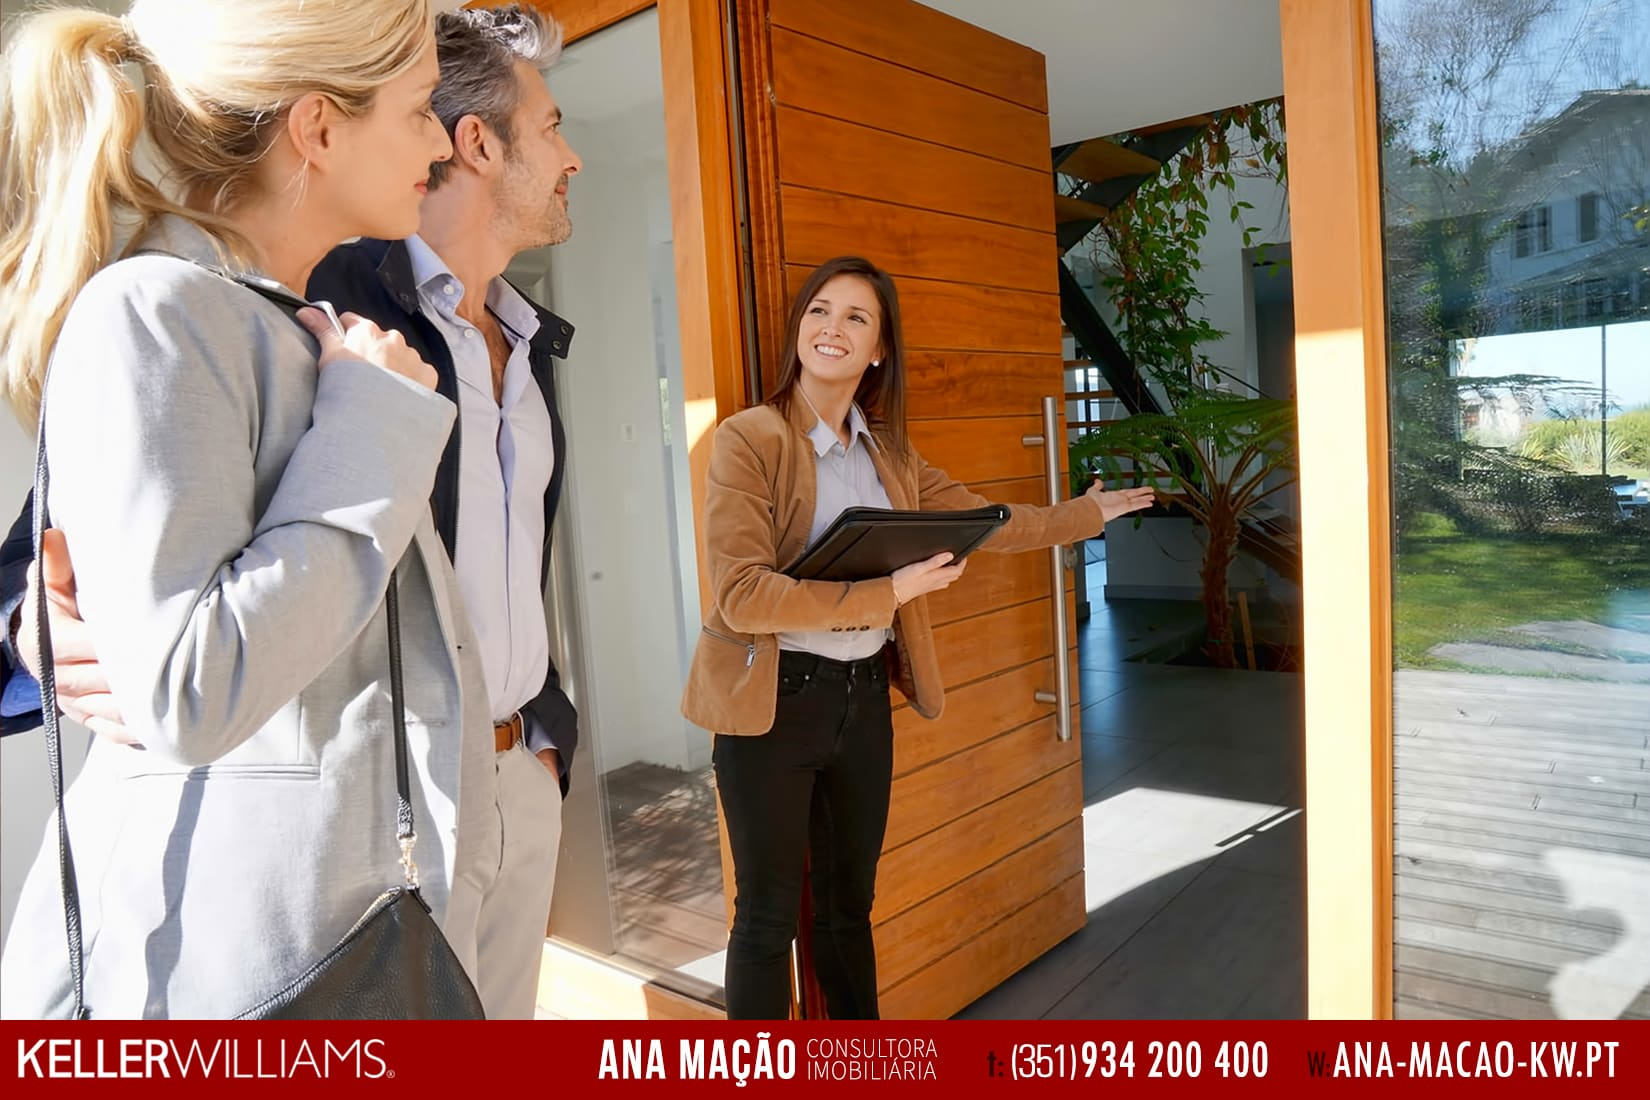 Why sell your home through a real estate agent?